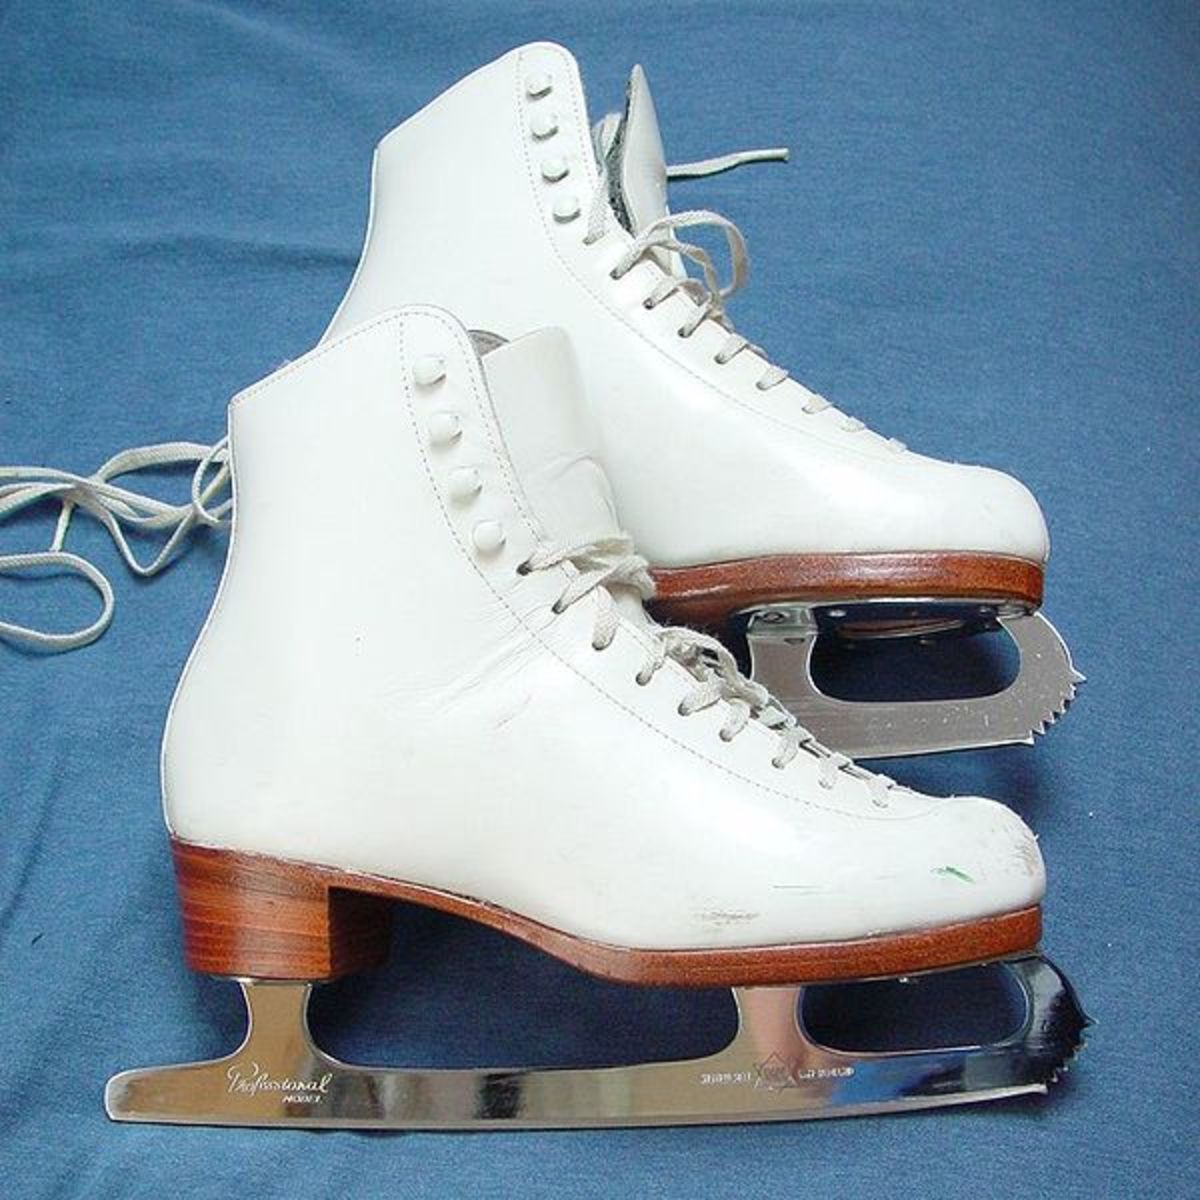 Example of figure skates.